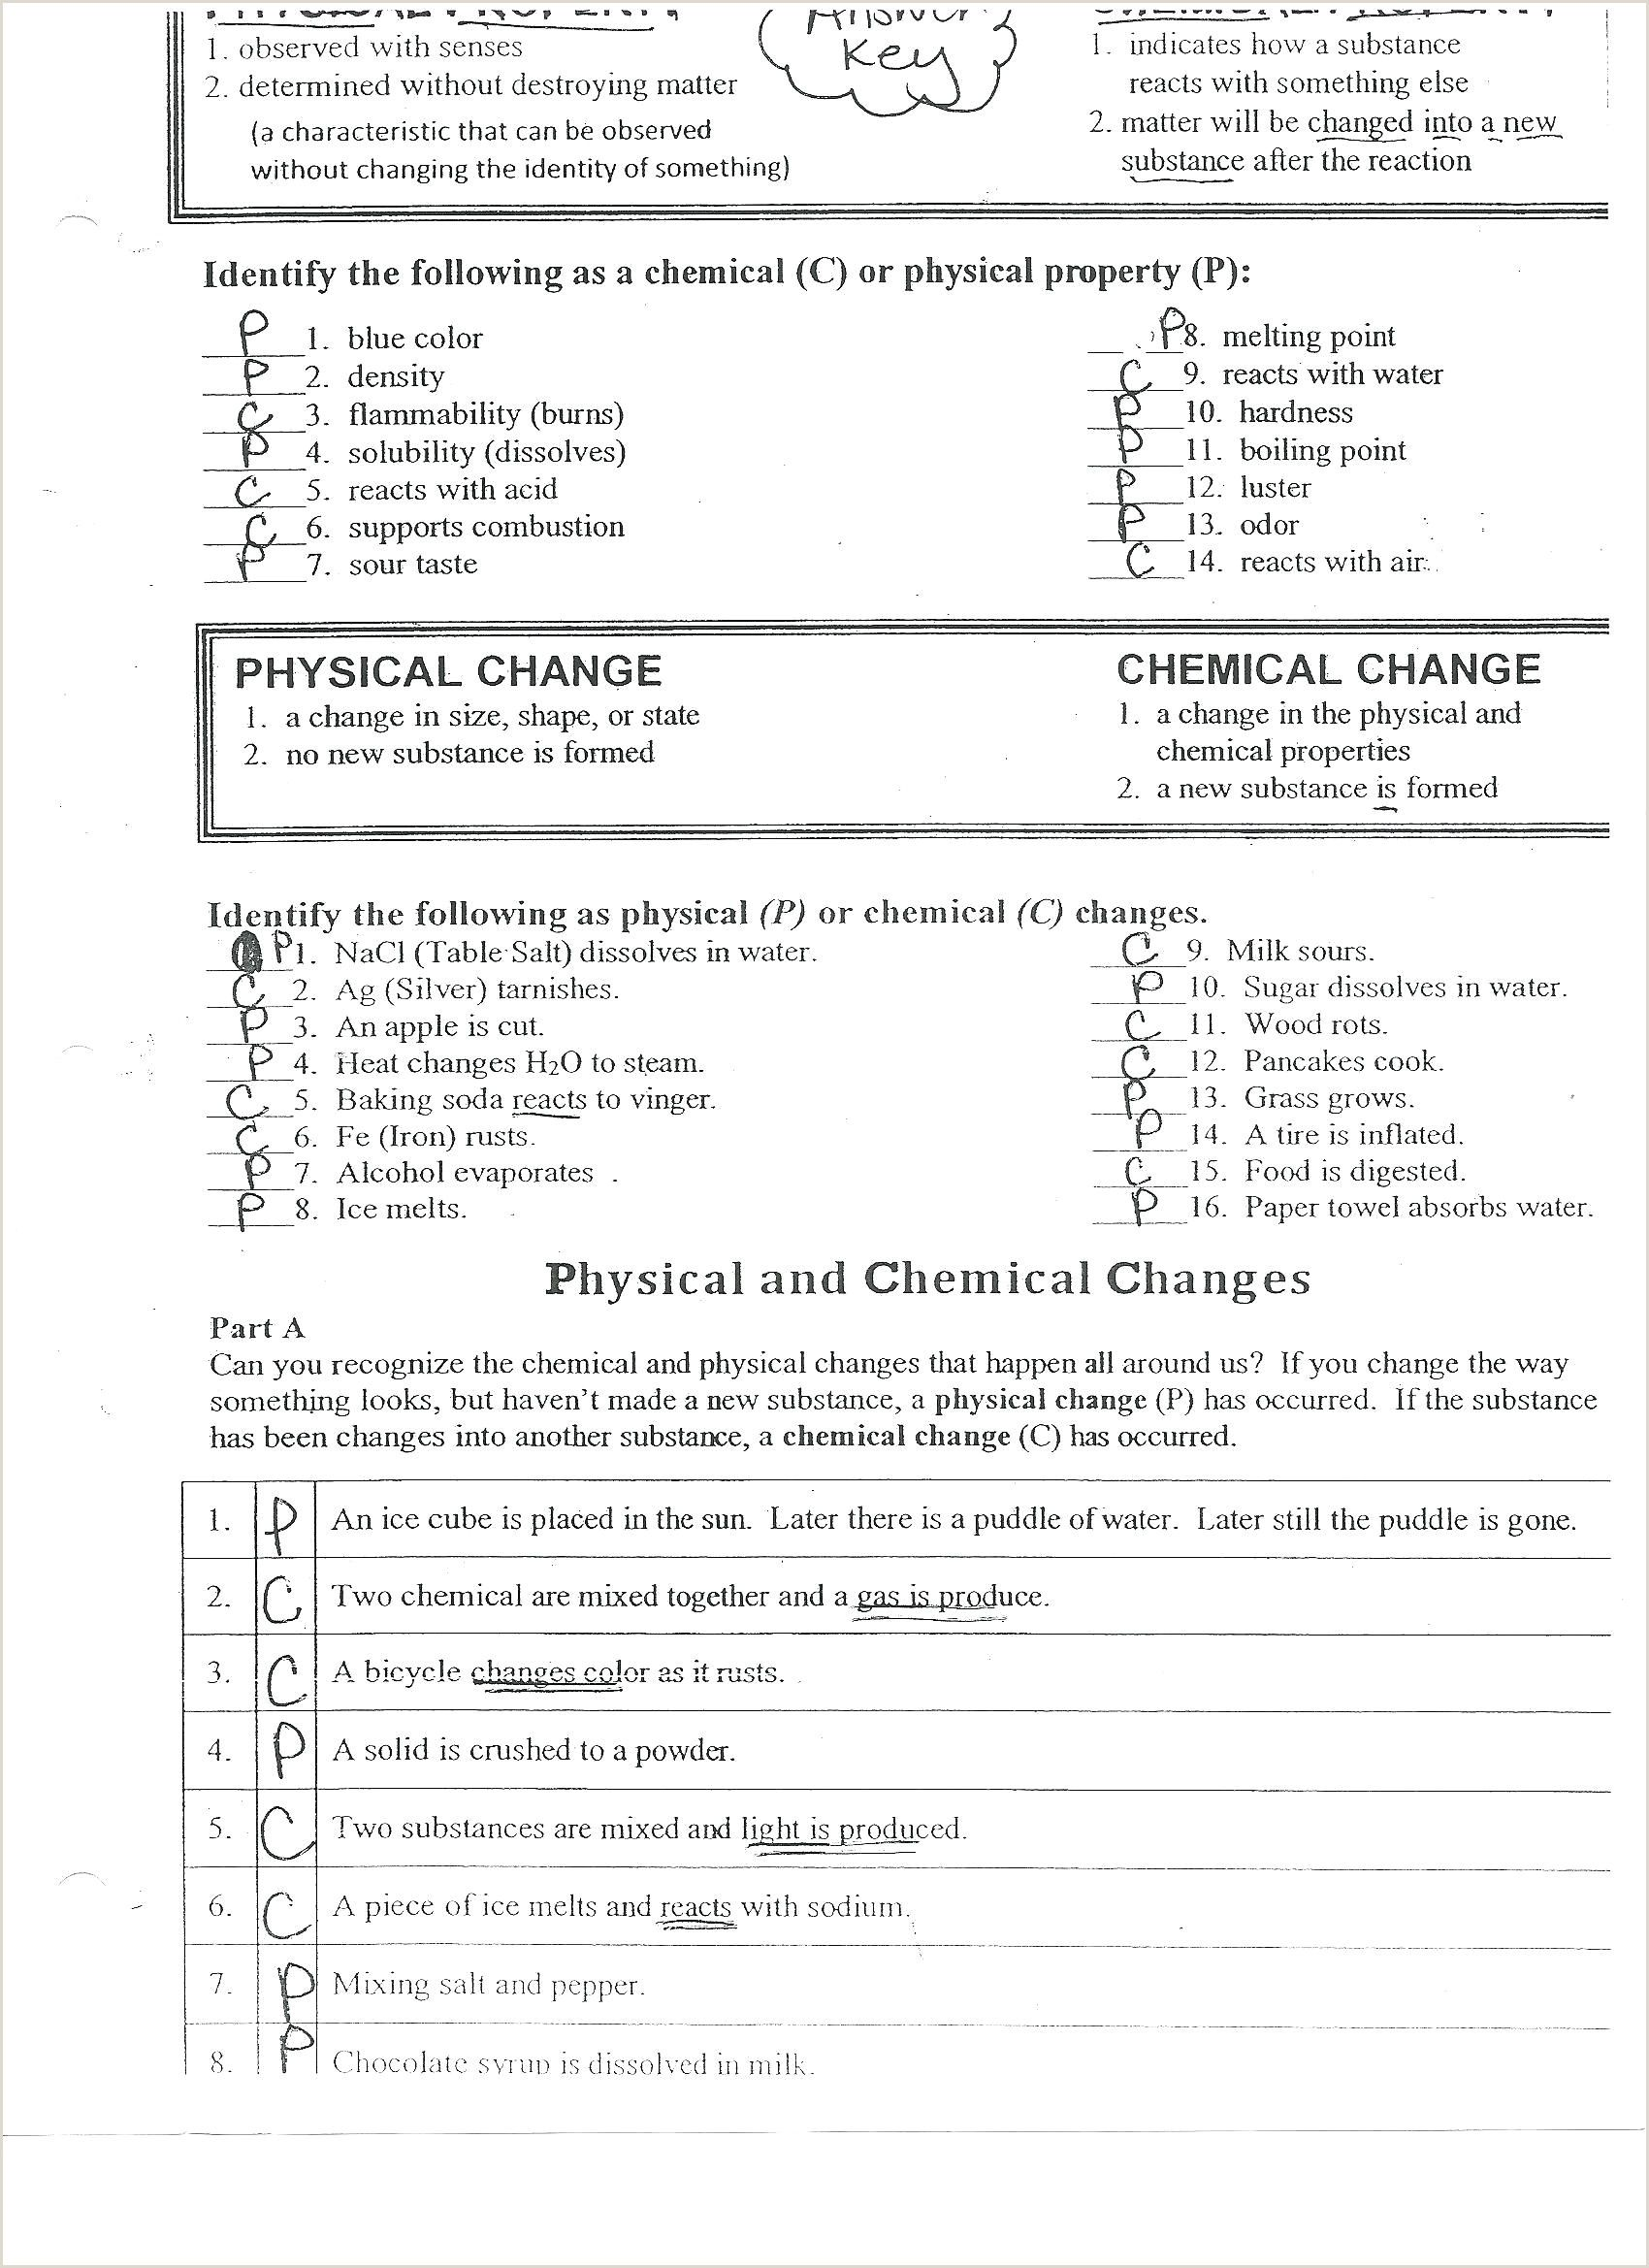 Physical Vs Chemical Change Worksheet Answers Physical Vs